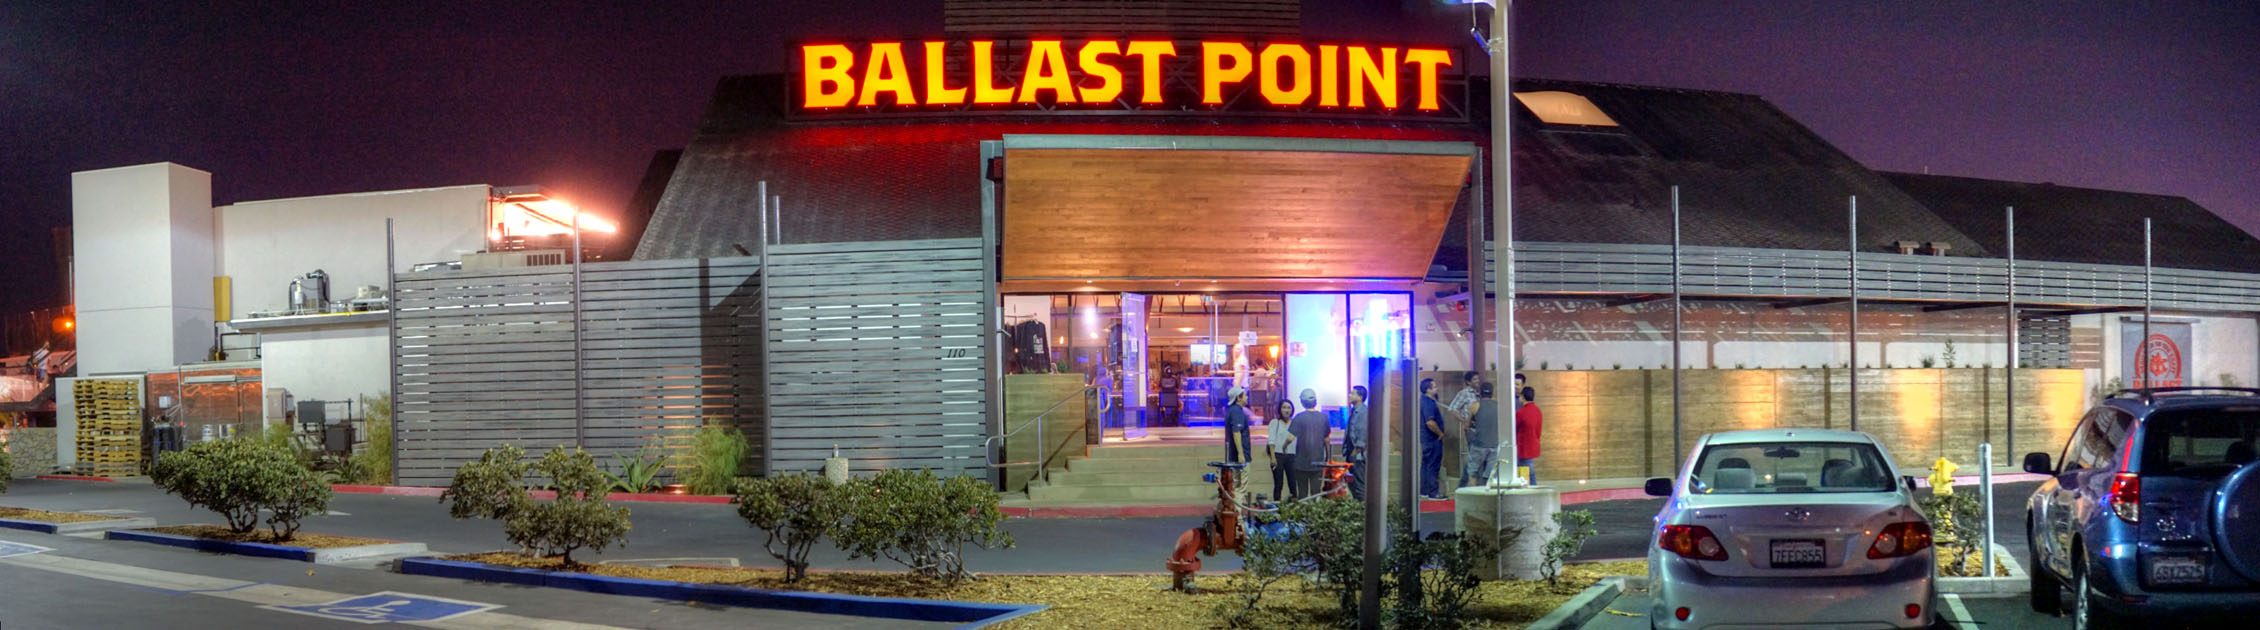 Ballast Point Long Beach Exterior